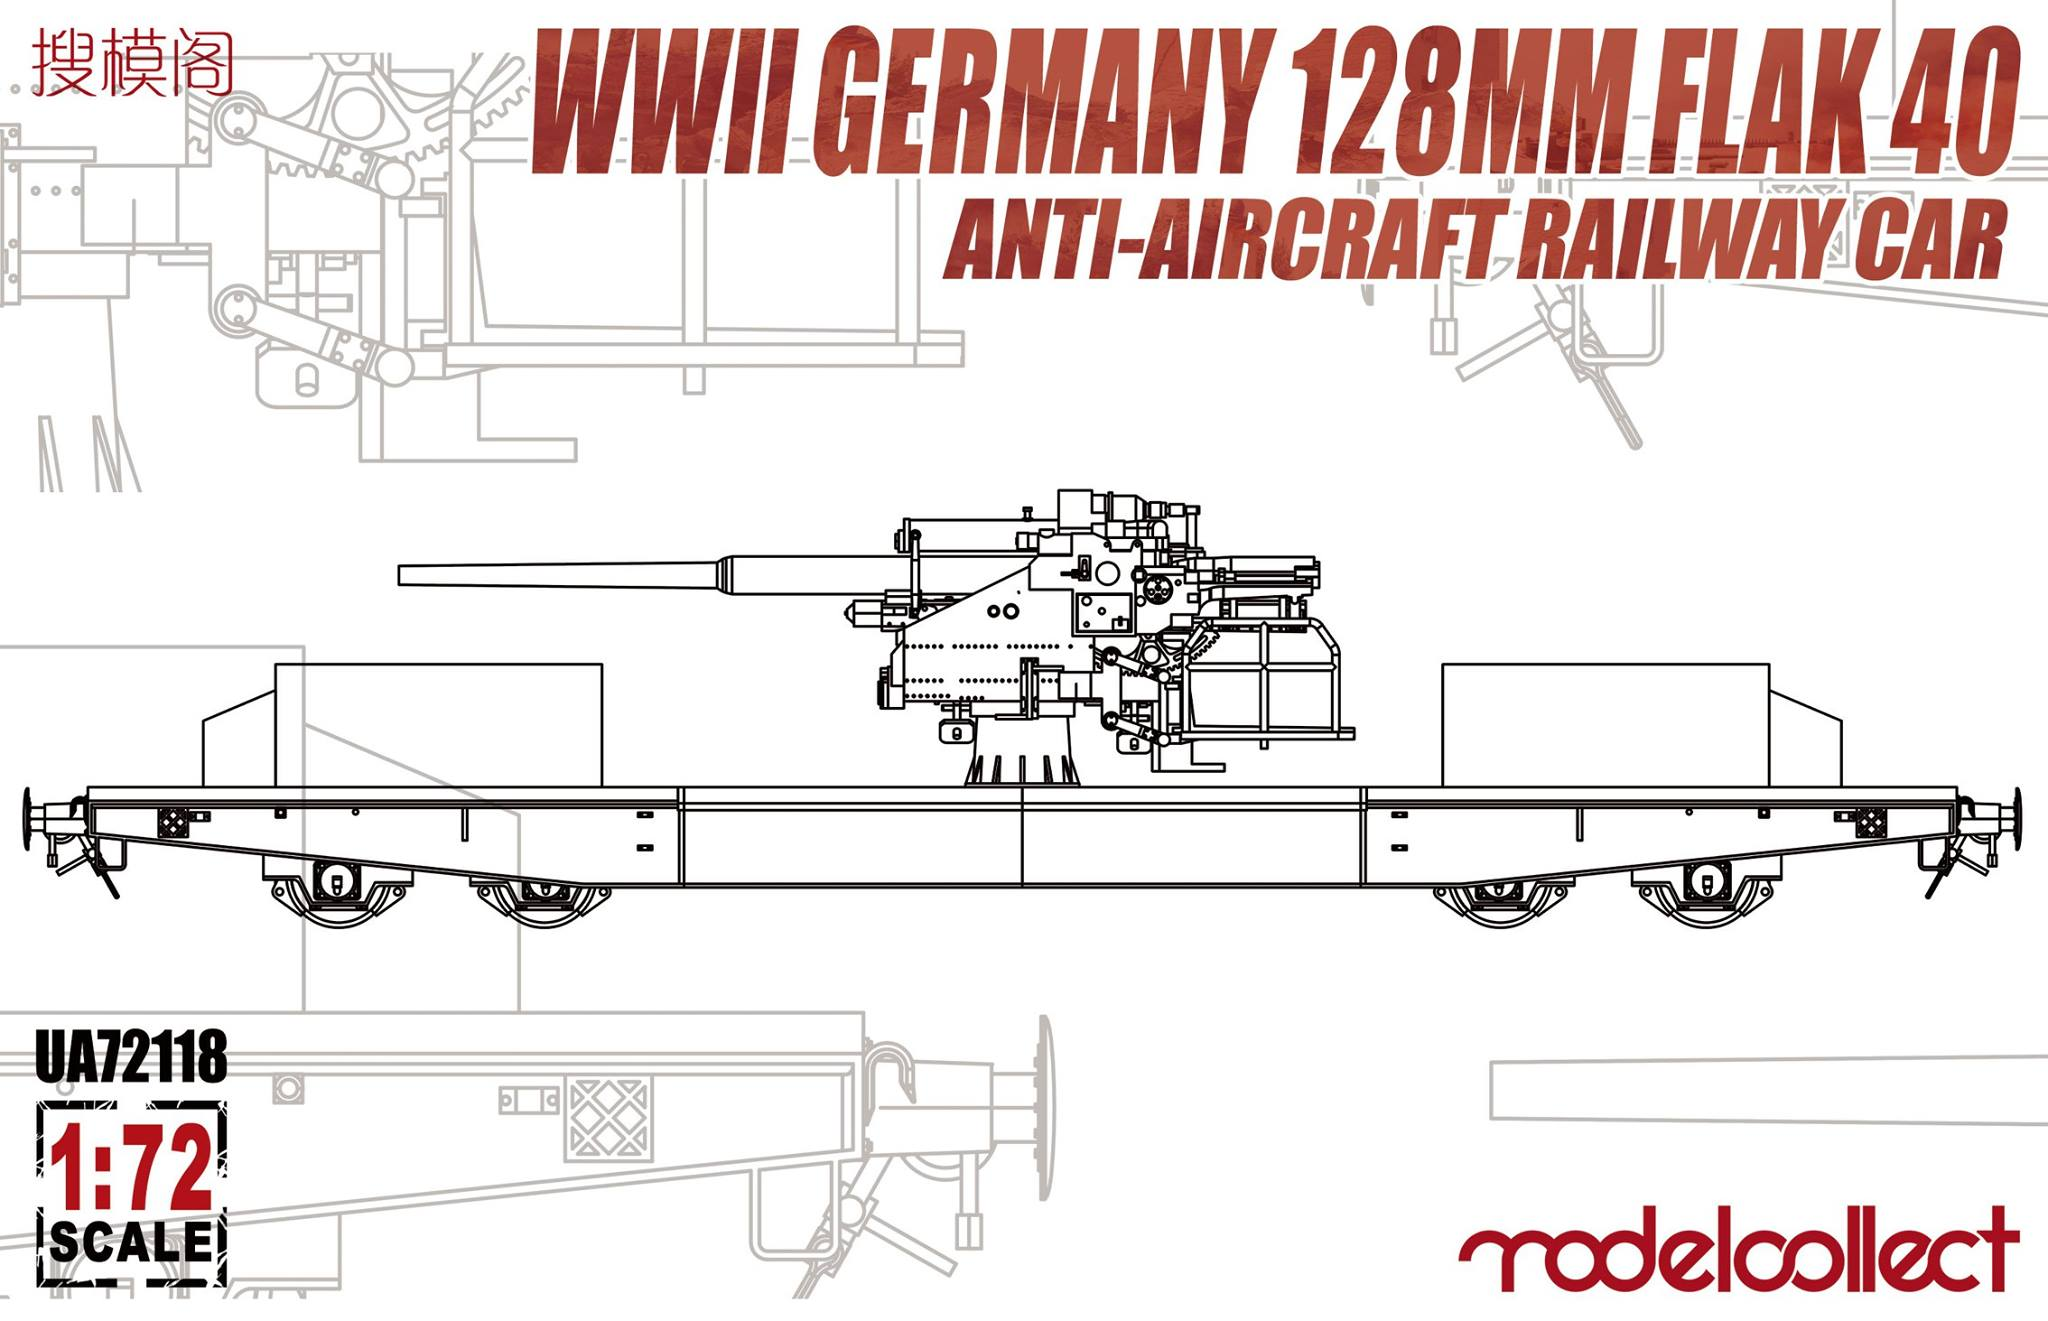 German 128mm Flak 40 Anti-Aircraft Railway Car